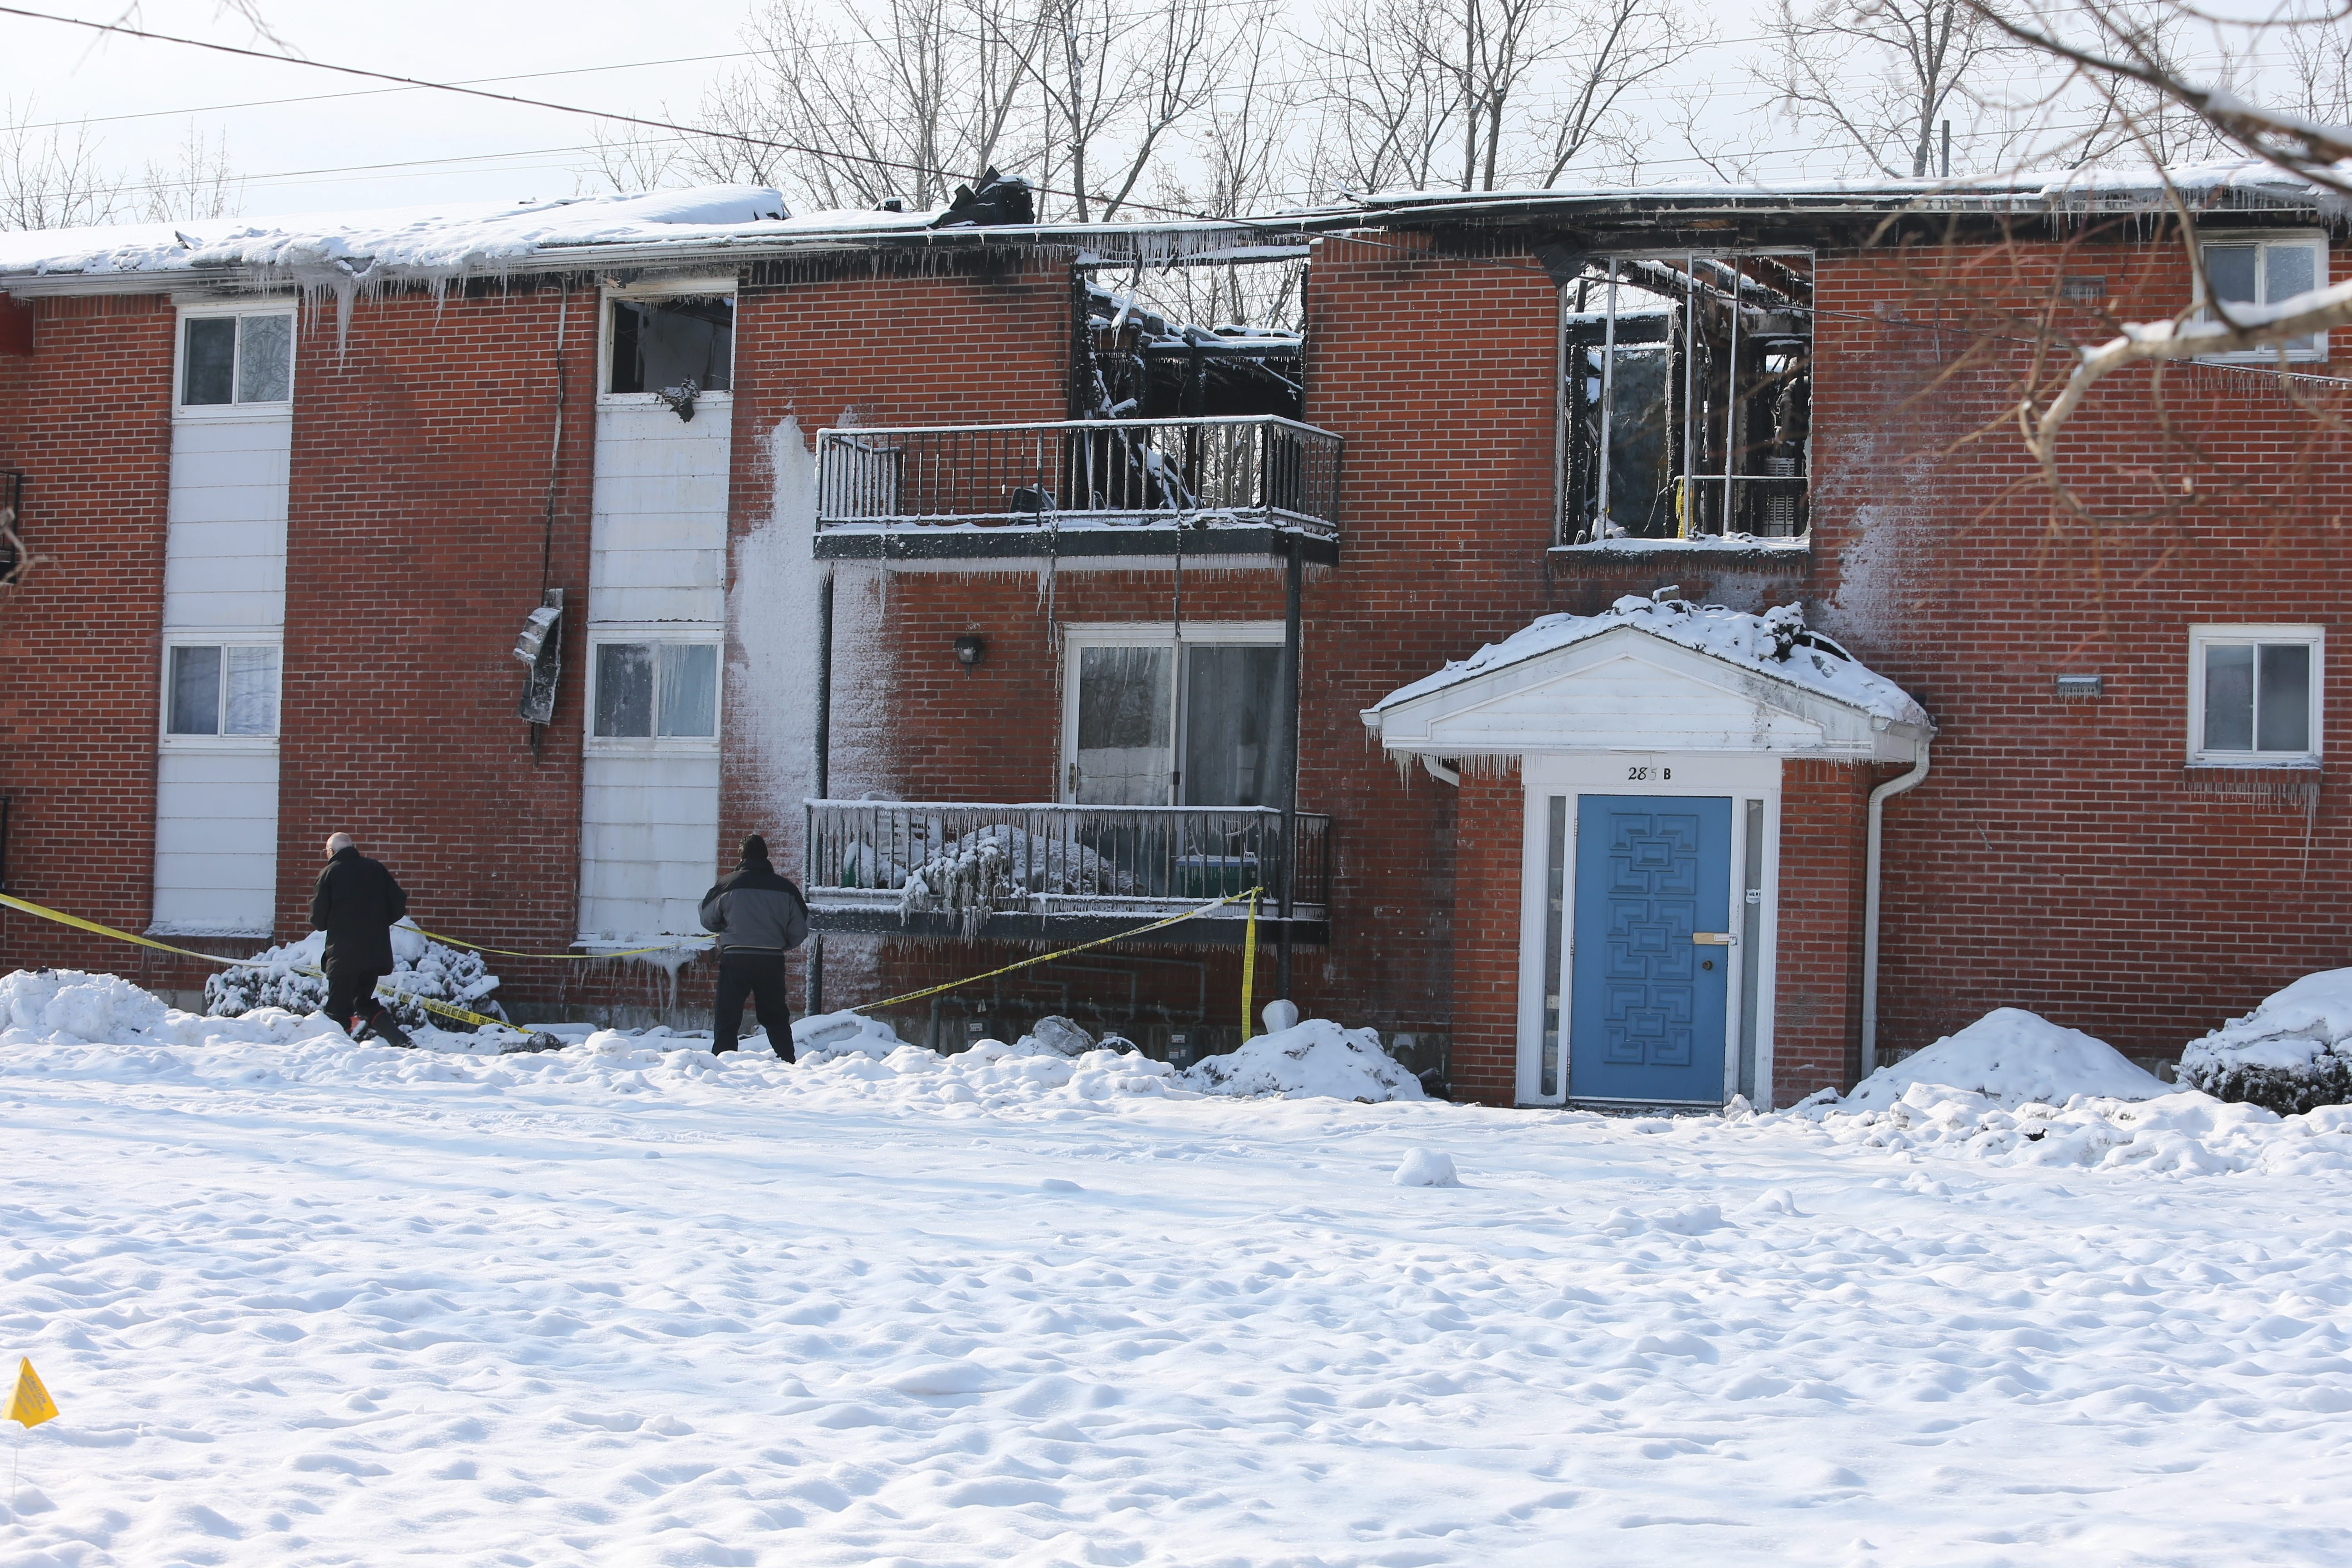 The outside of the apartment building on Scamridge Curve in Amherst, where a deadly fire took place, is seen Monday.